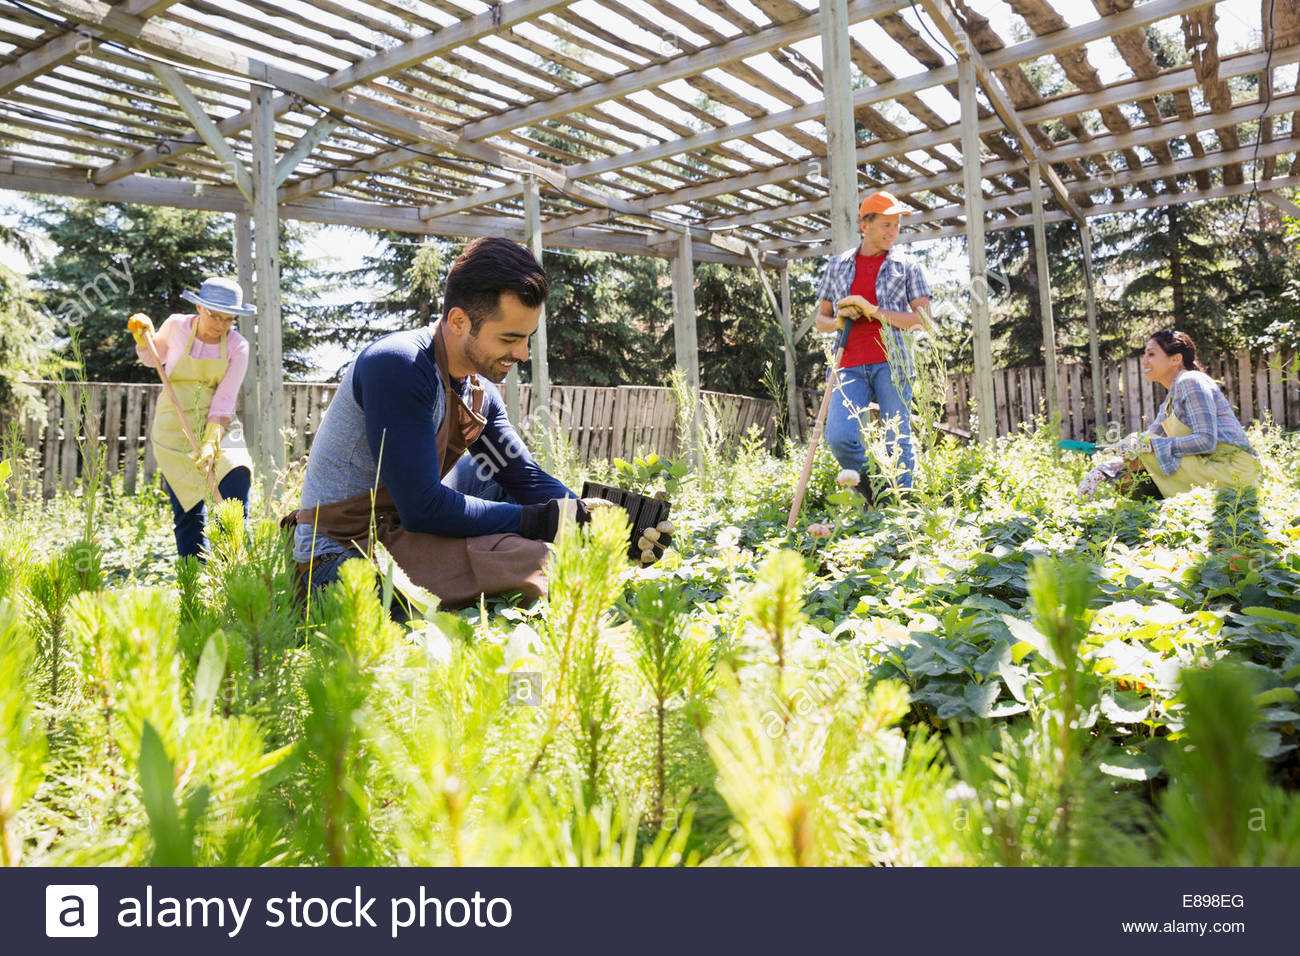 Workers tending to plants at plant nursery Stock Photo